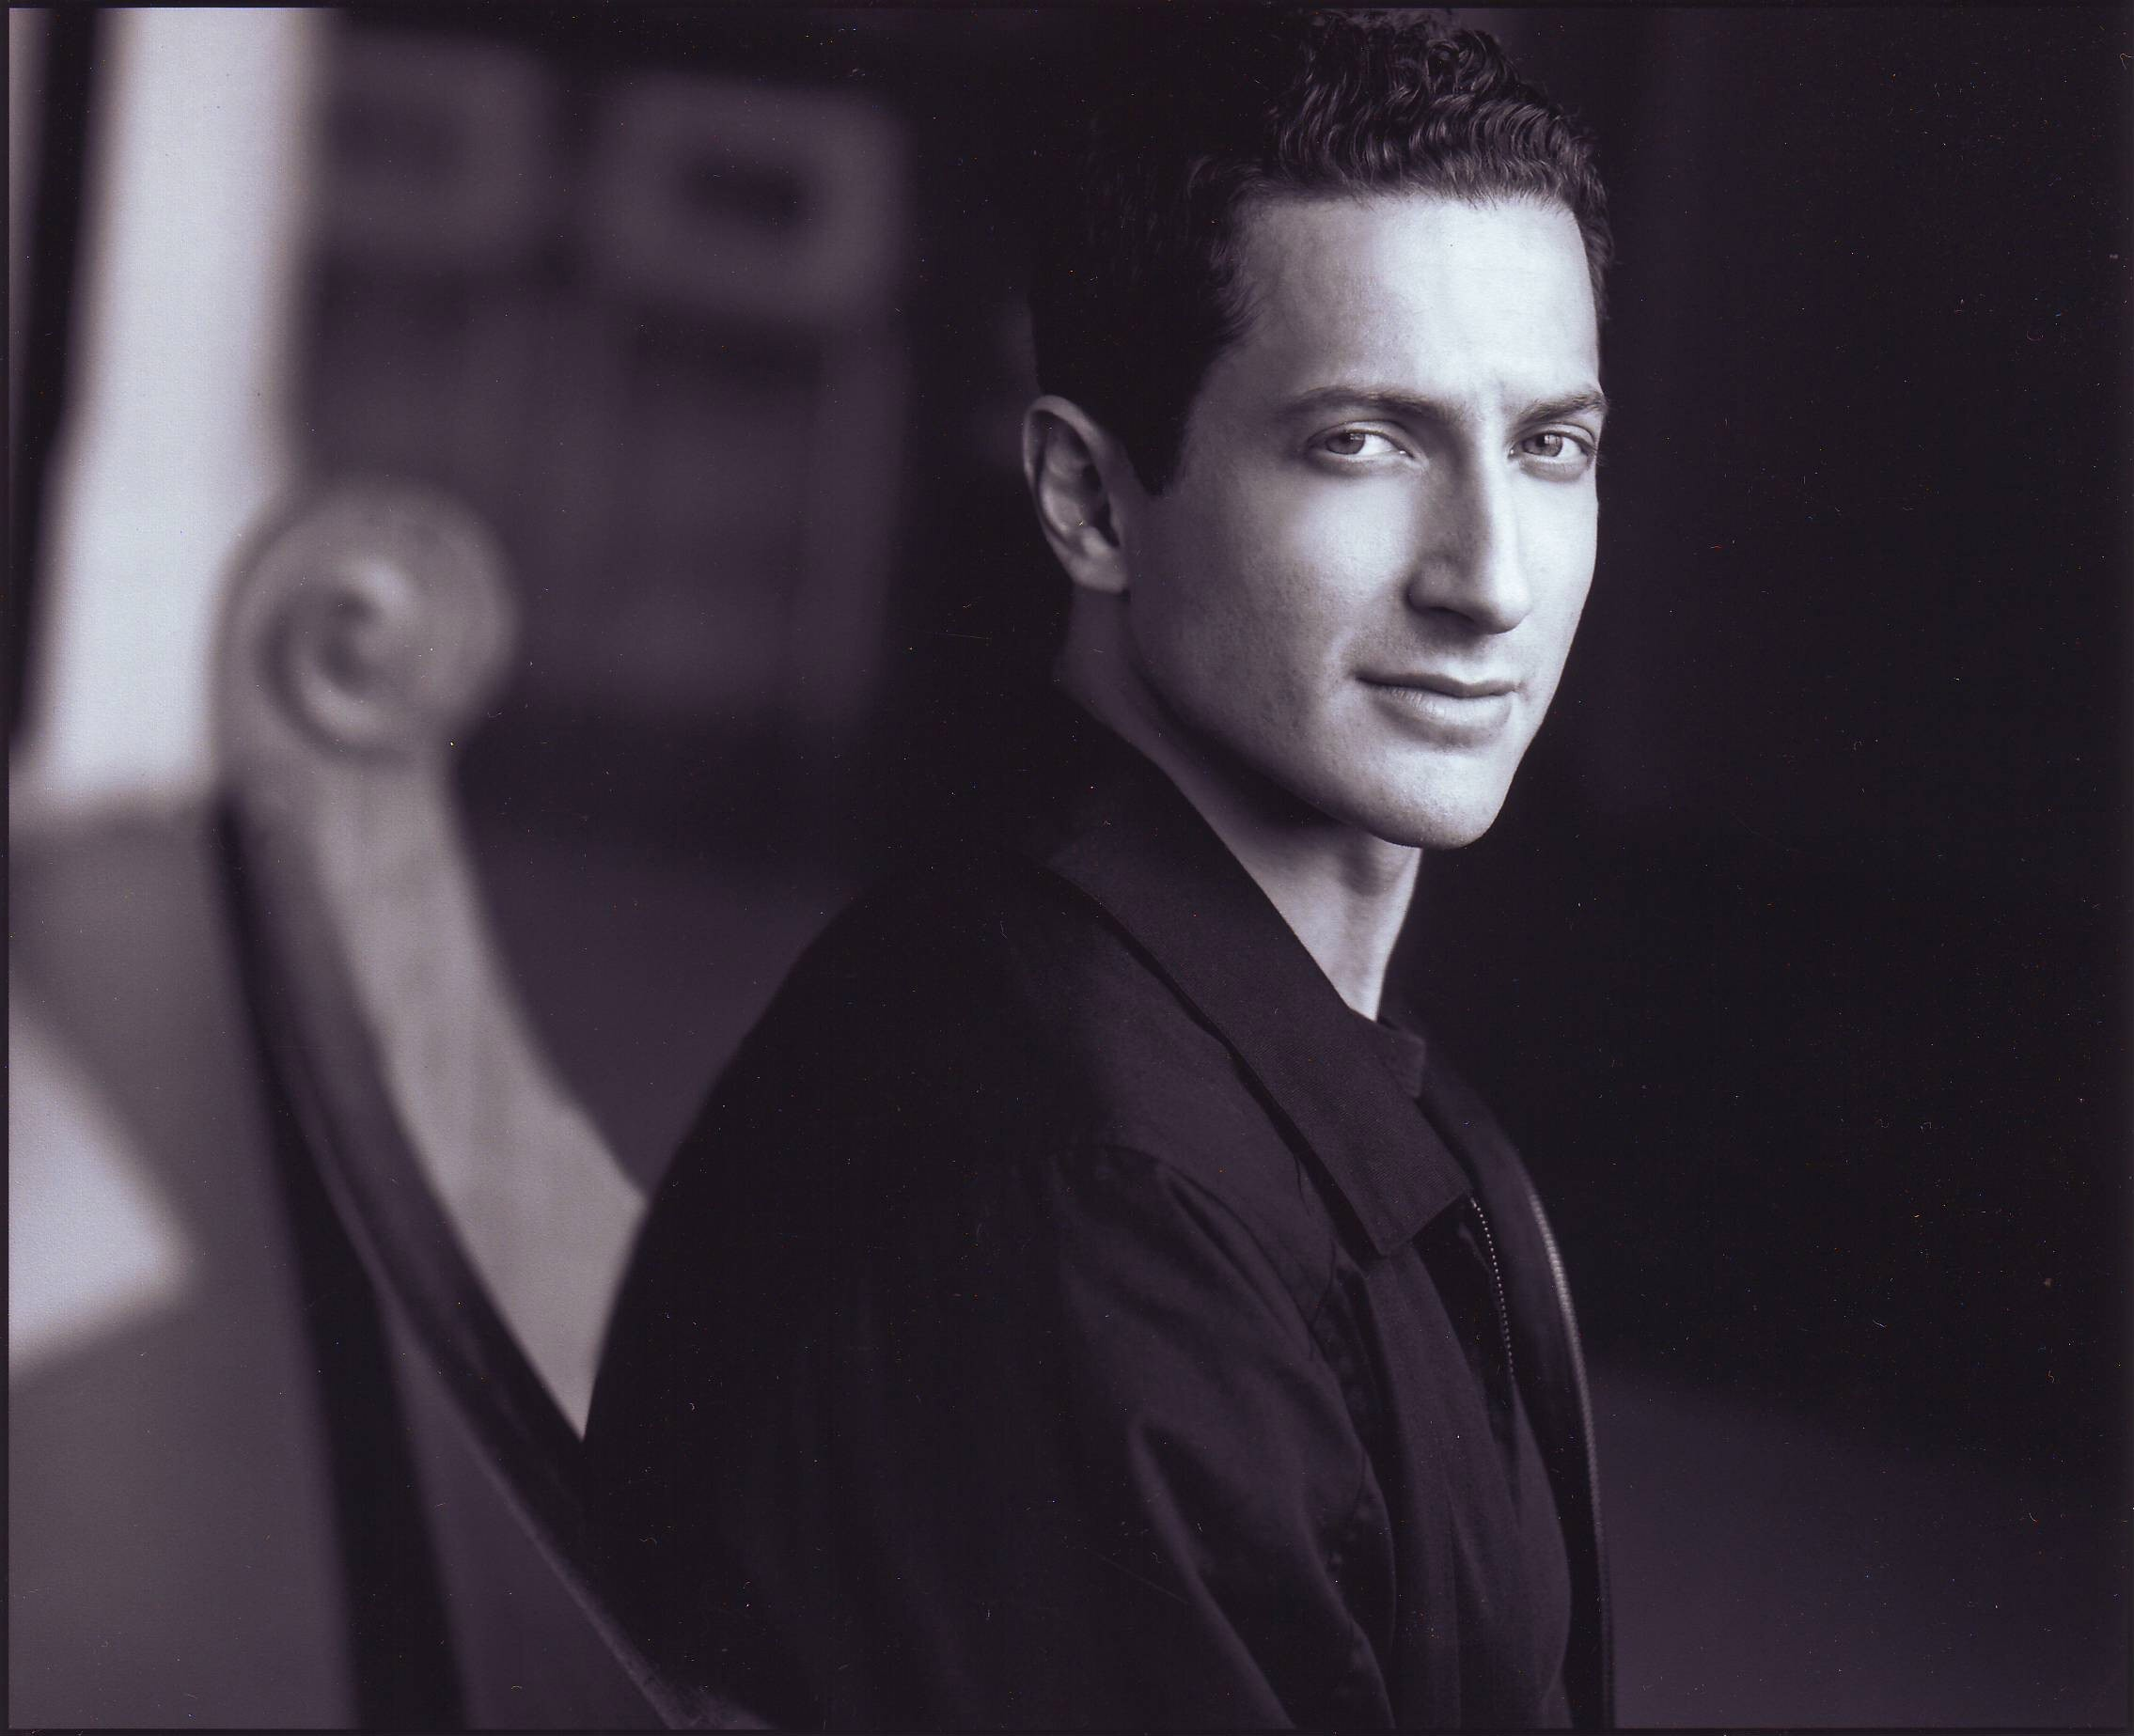 Un wallpaper di Sasha Roiz